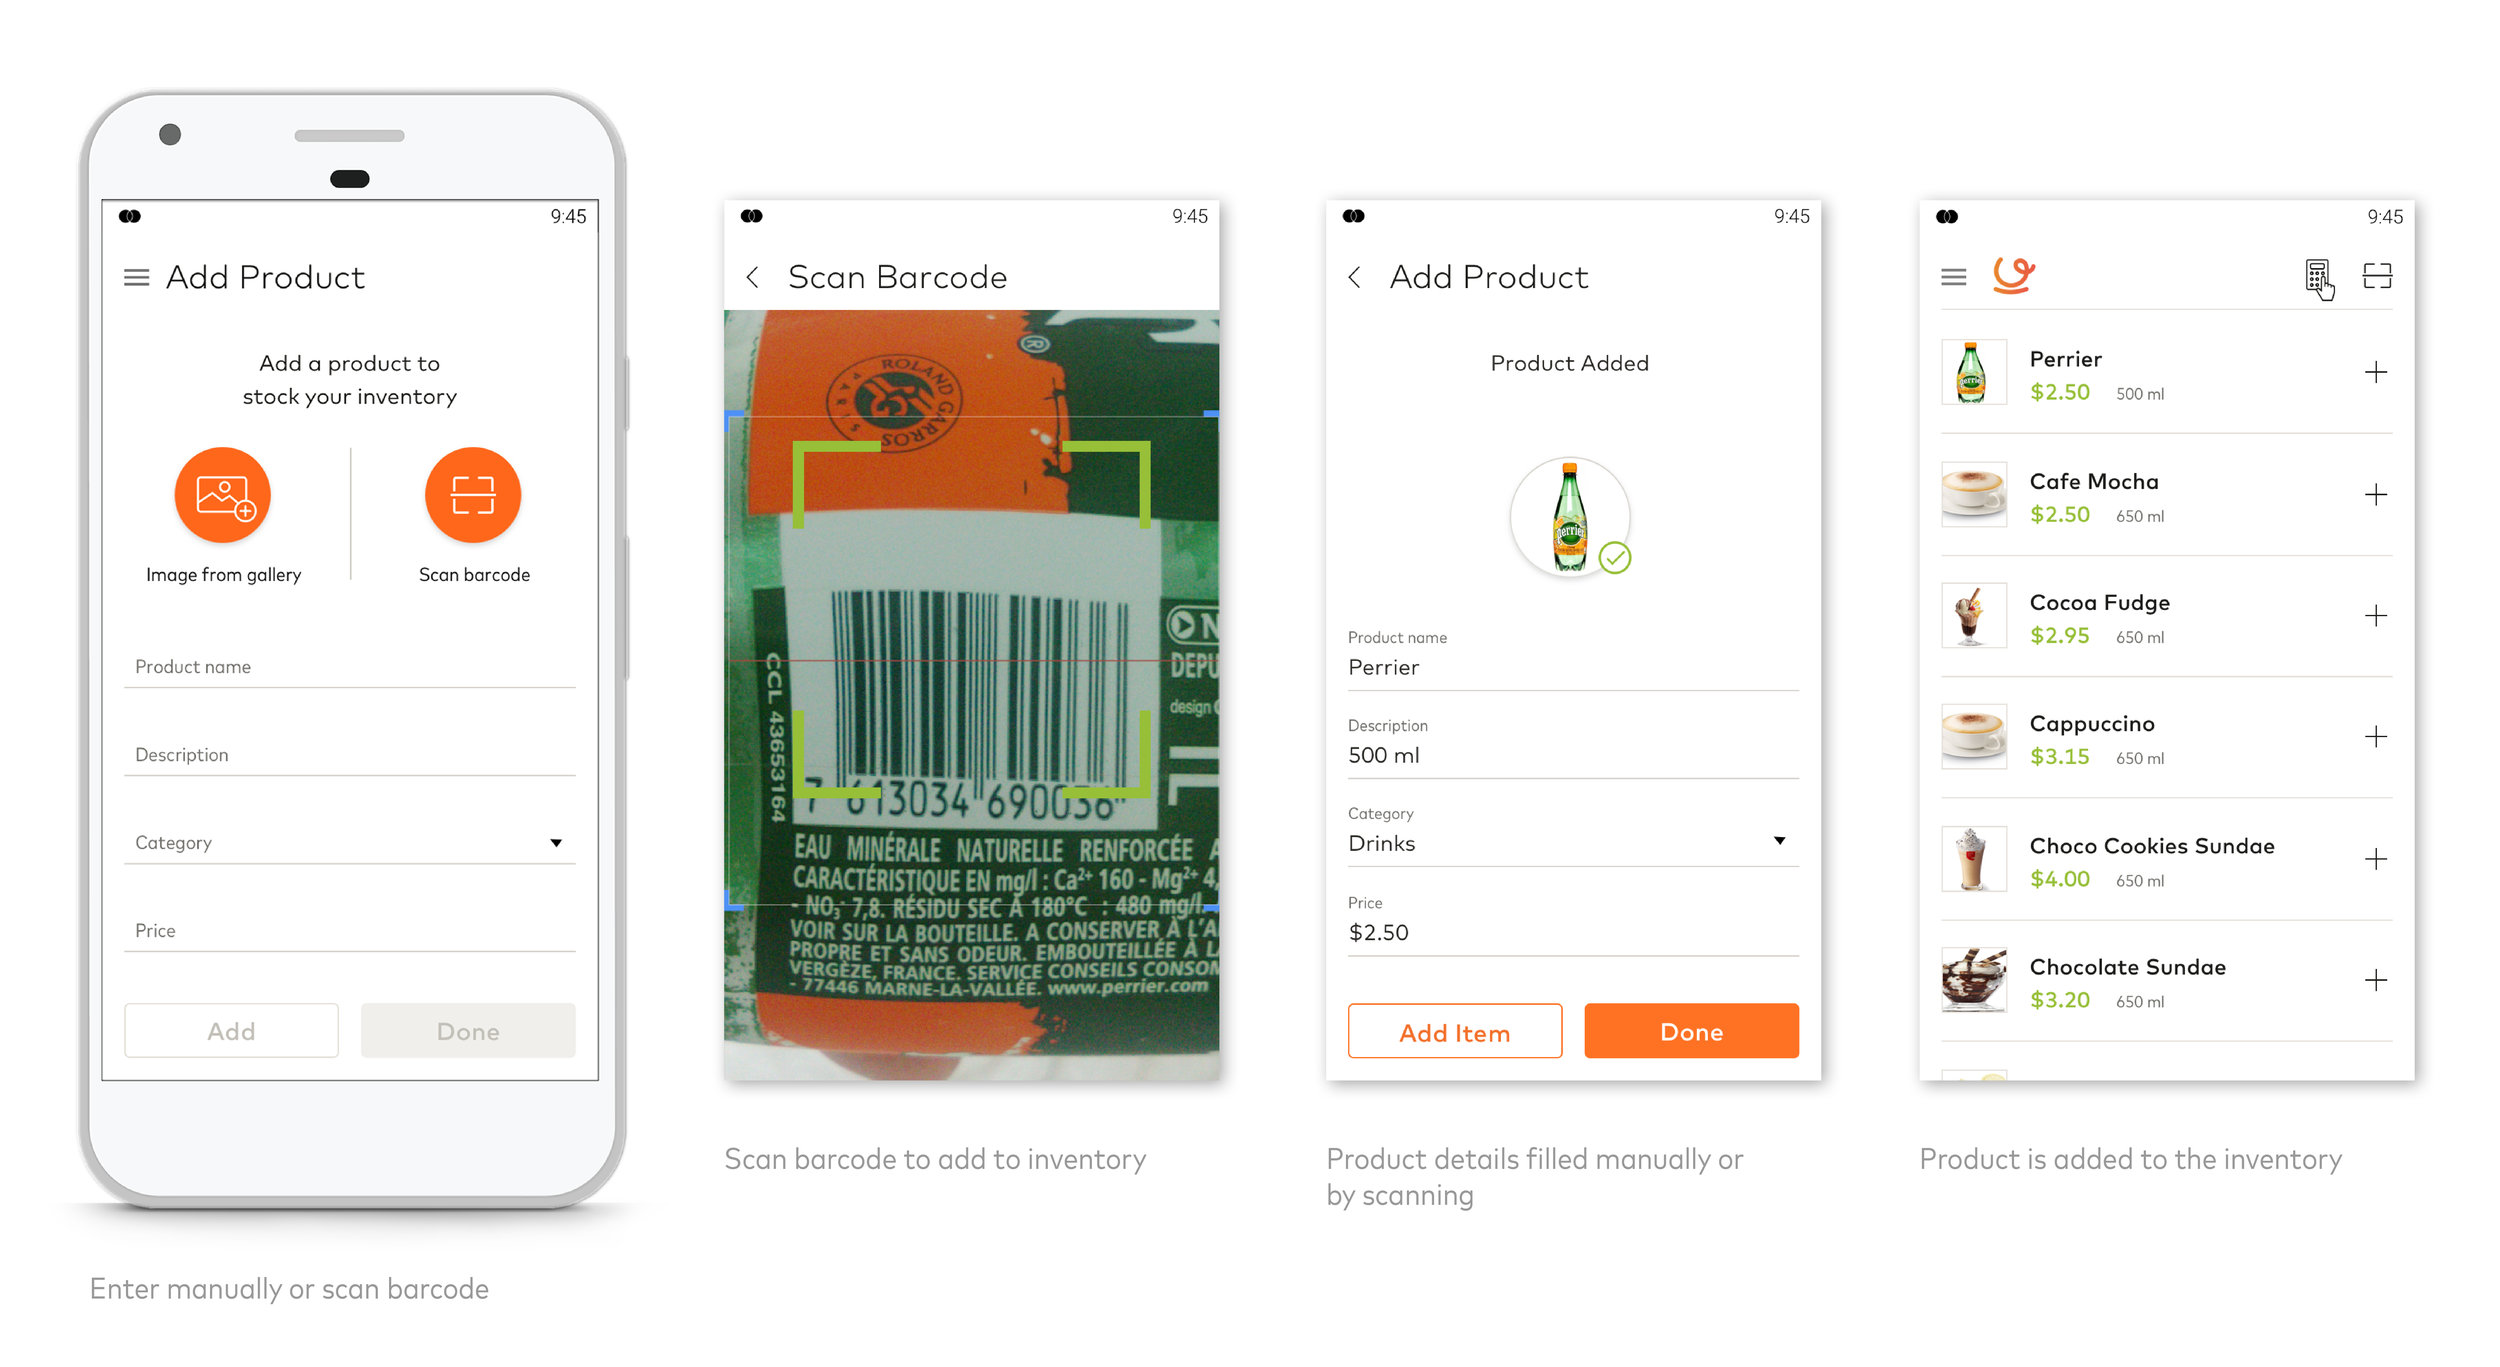 Merchants can either add product manually or by scanning barcode